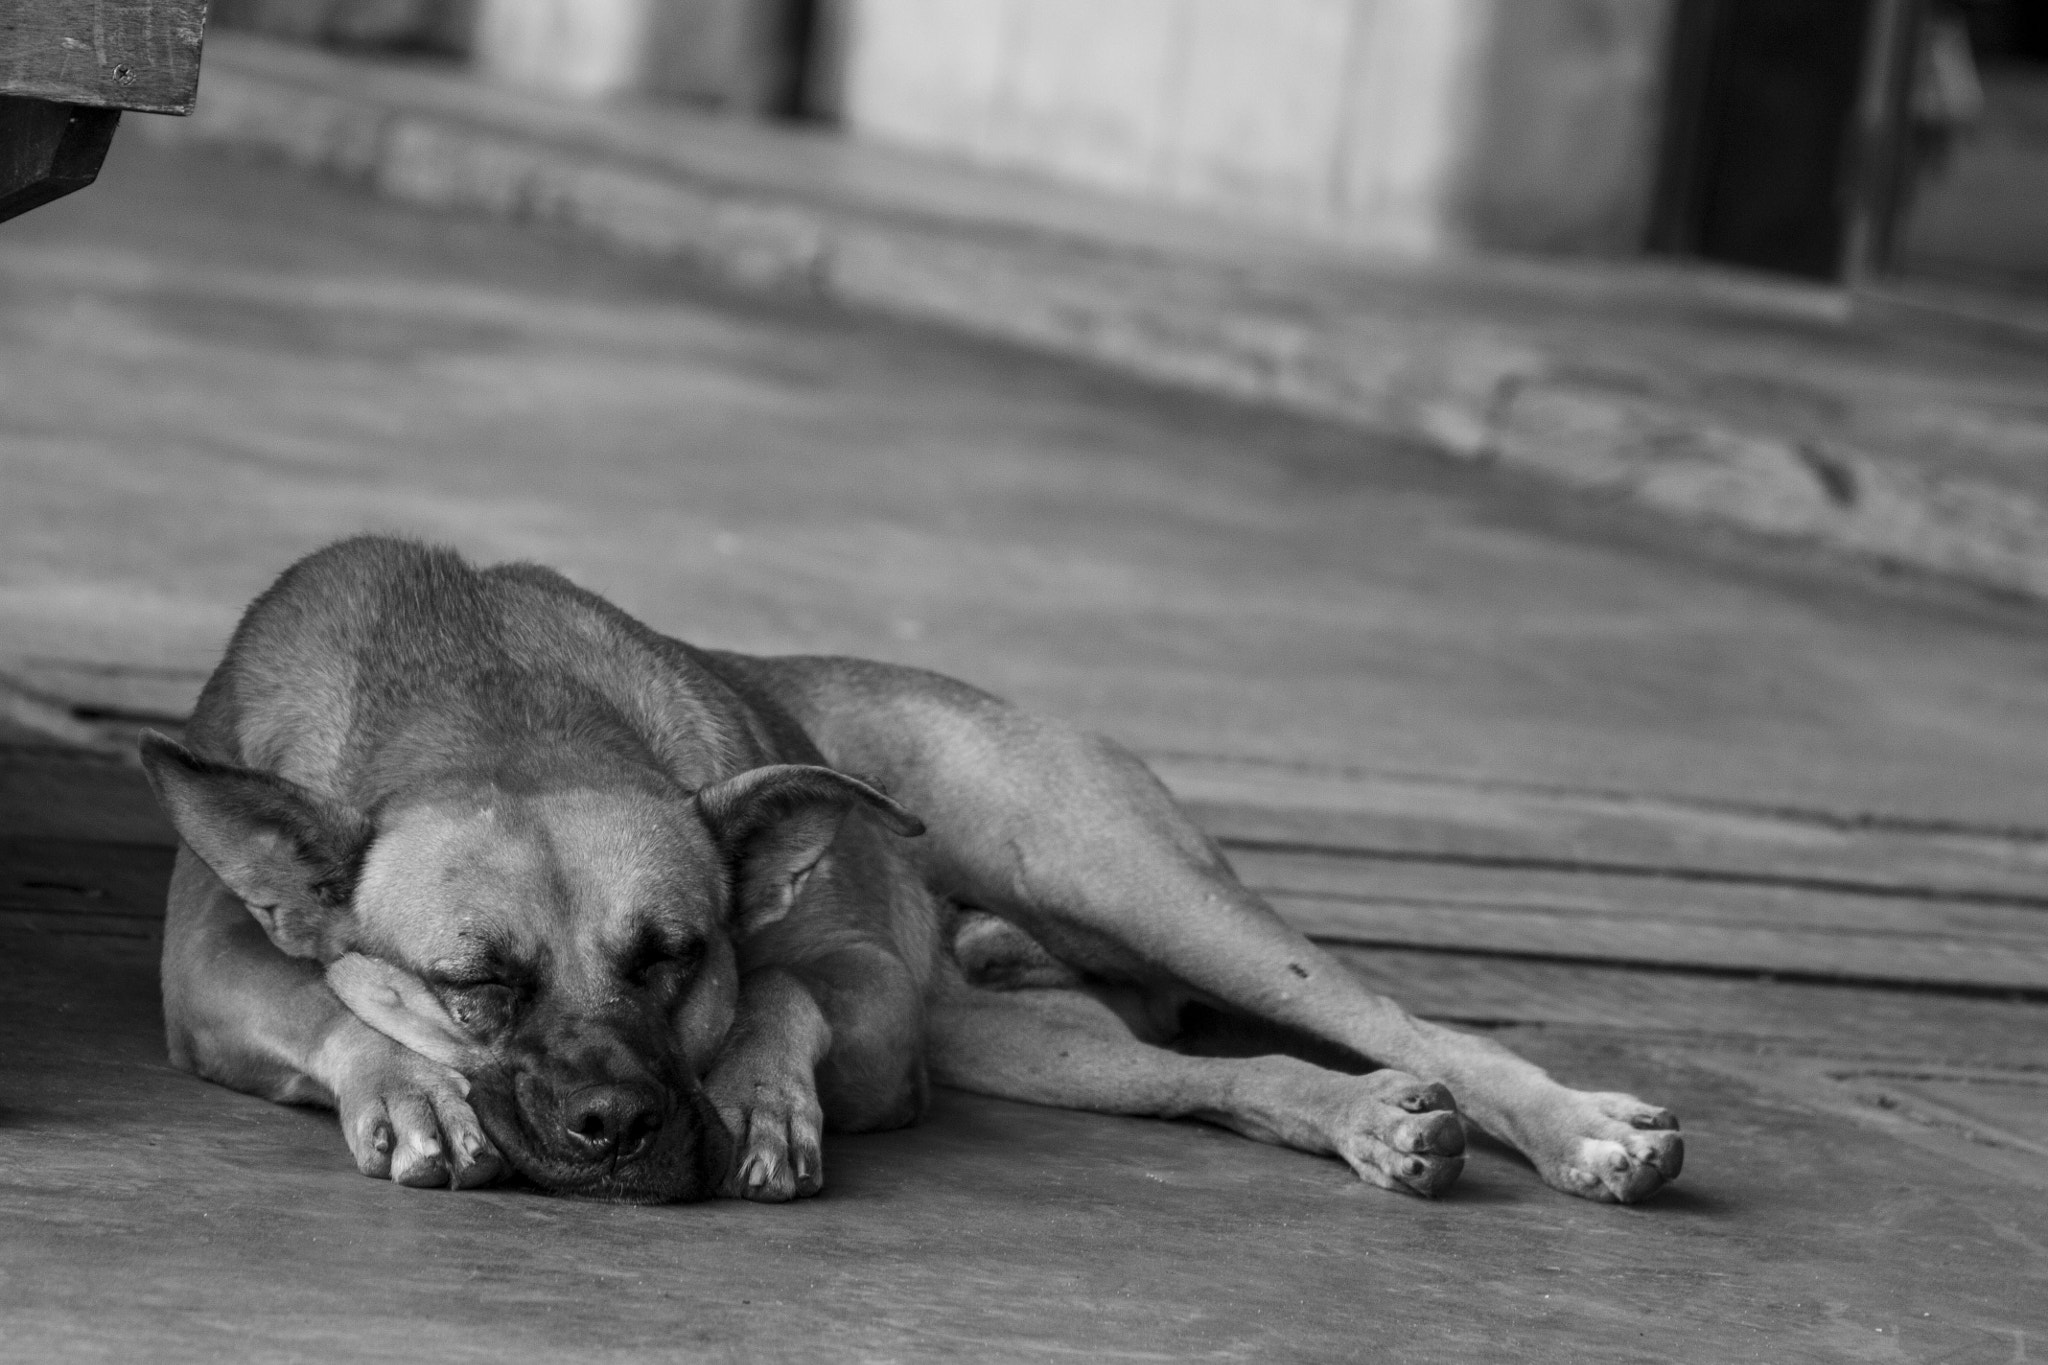 Photograph Sleepy Dog by German Lopez on 500px